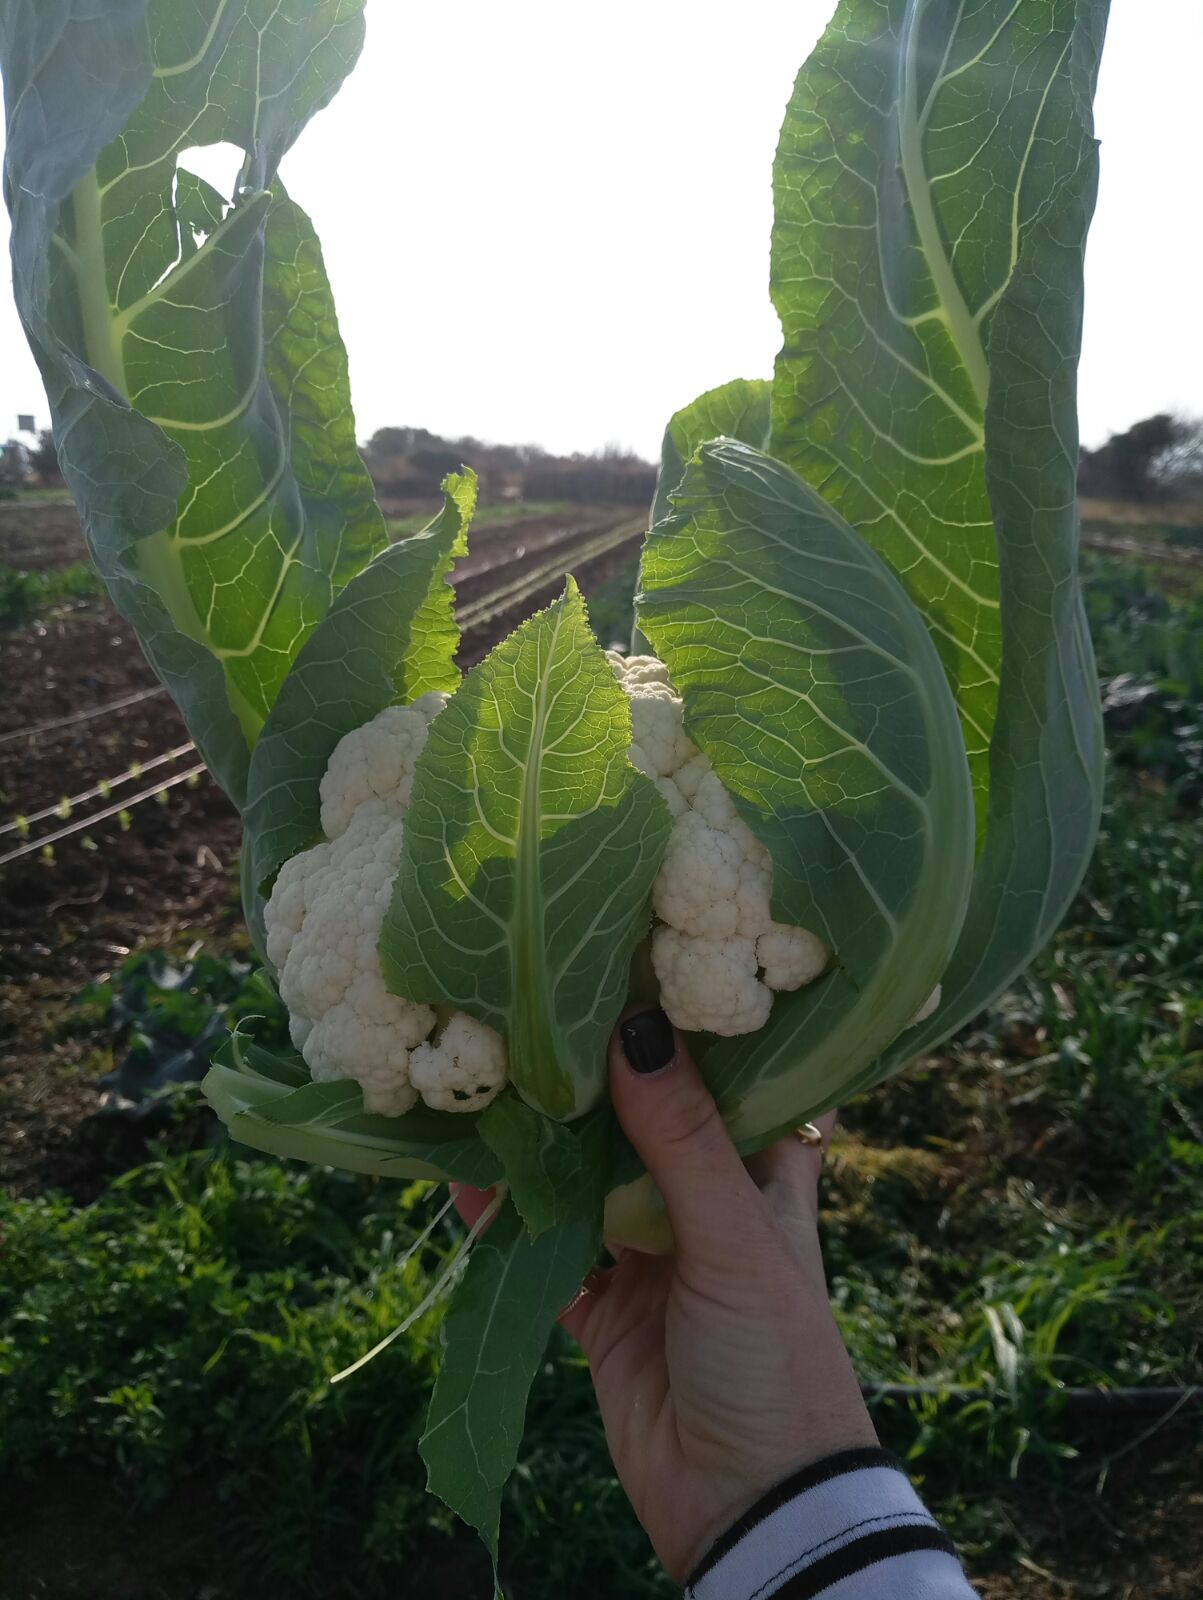 Cauliflower in the morn